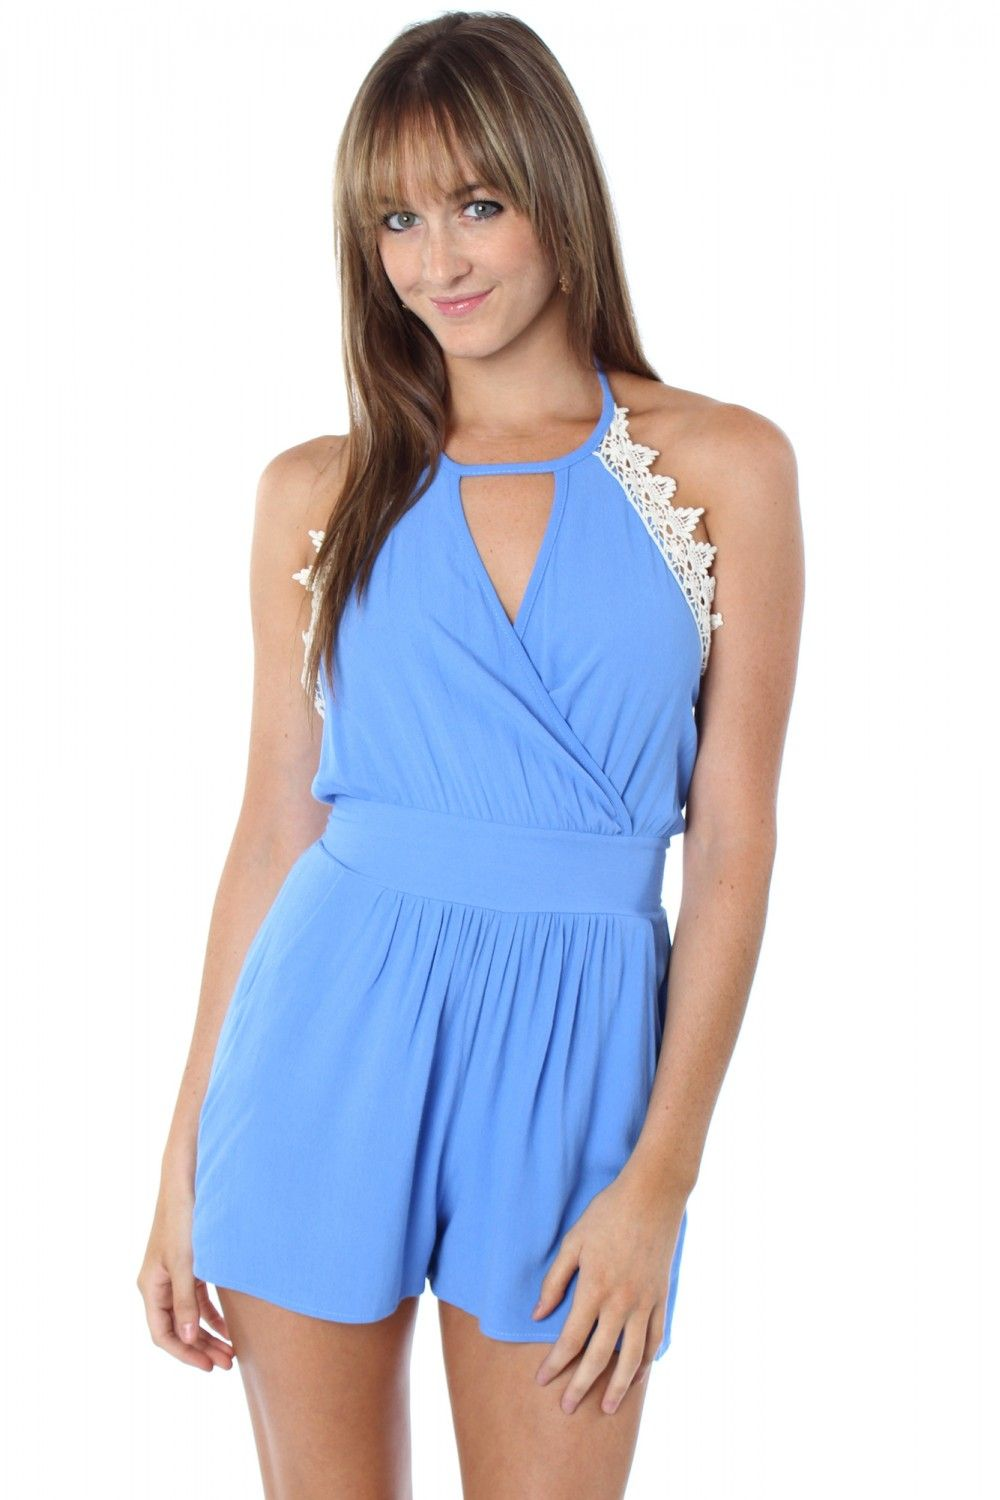 Own The Nigh Romper Blue $32.99 #sophieandtrey #rompers #halter #openback #crochet #cross #pockets